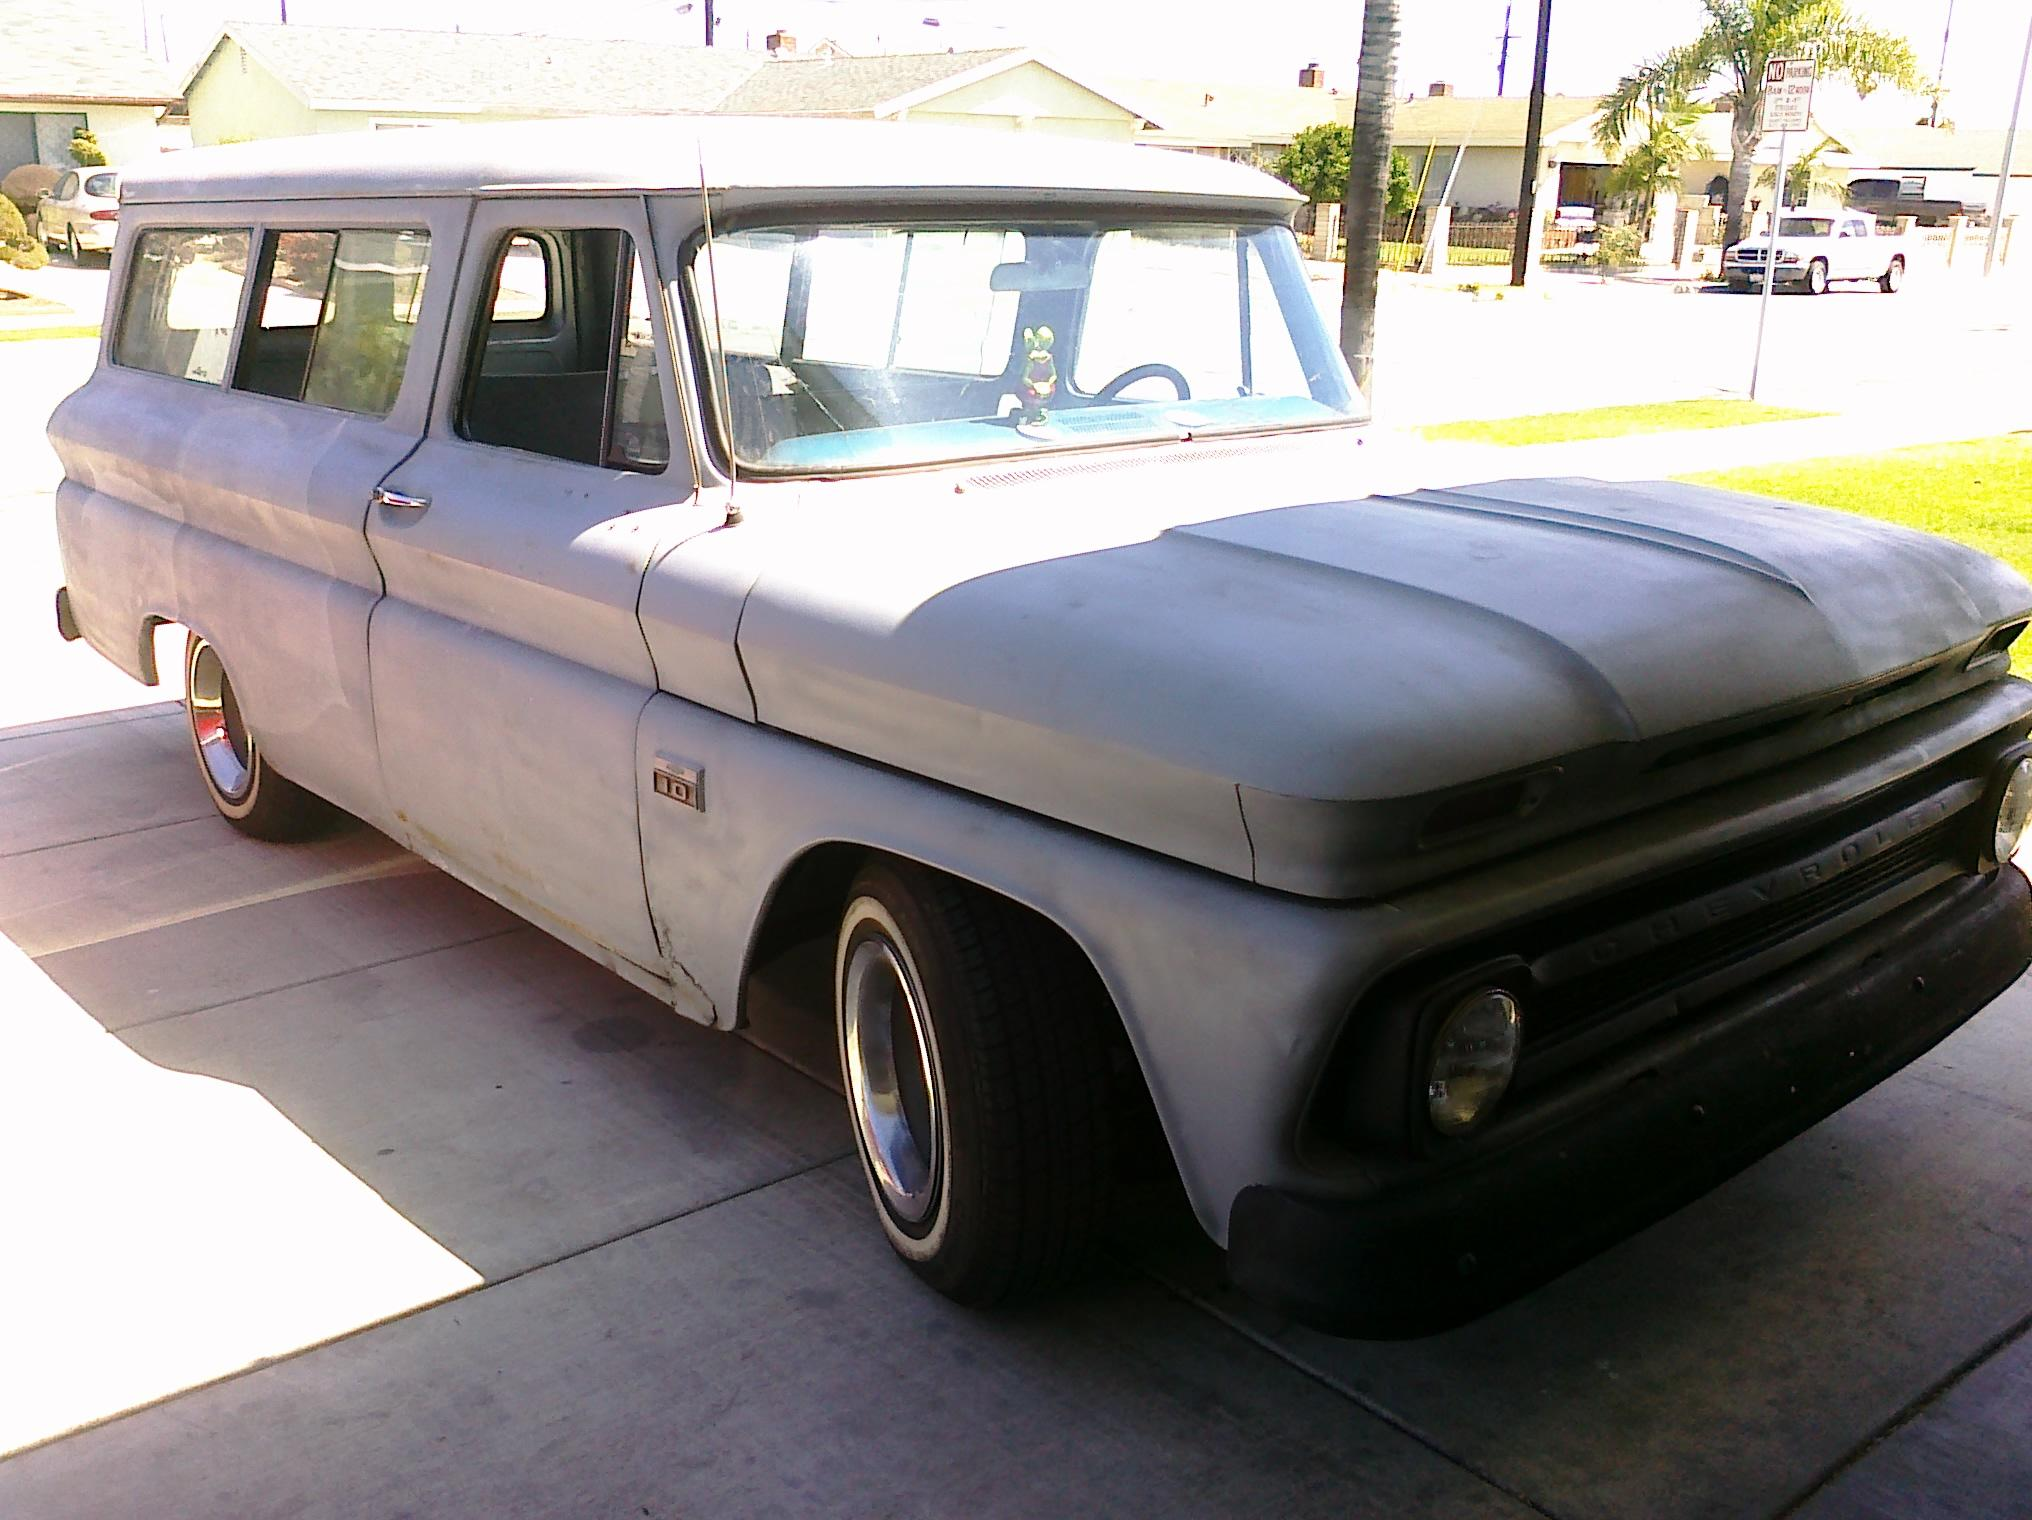 pin 1966 chevy suburban - photo #23